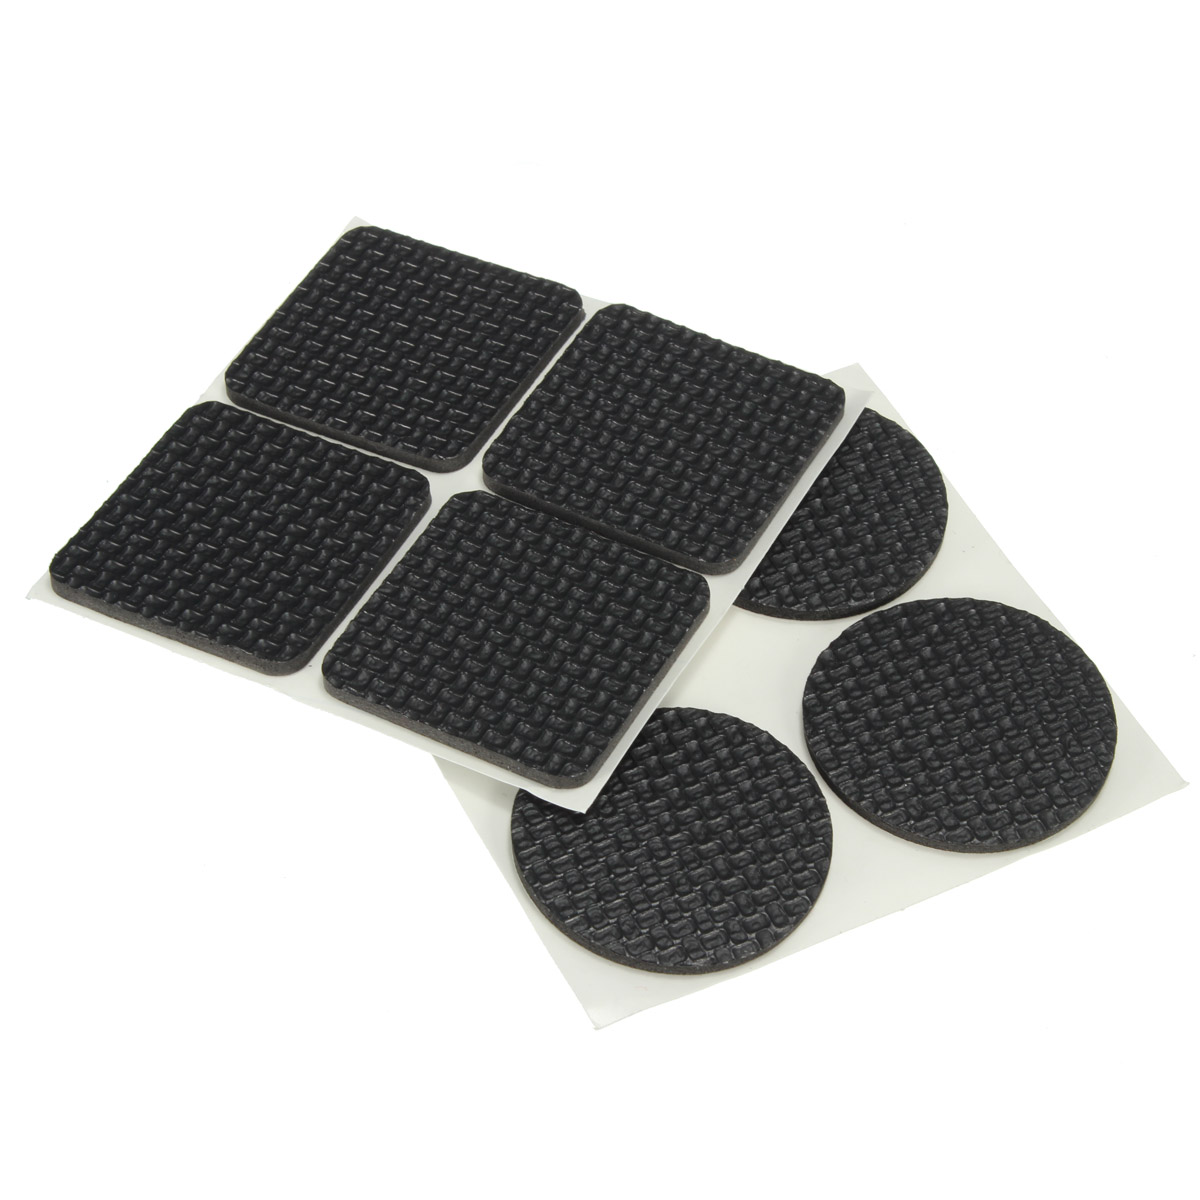 4 X 25mm Black Rubber Floor Protector Cap Furniture Chair Protector Anti Scratch